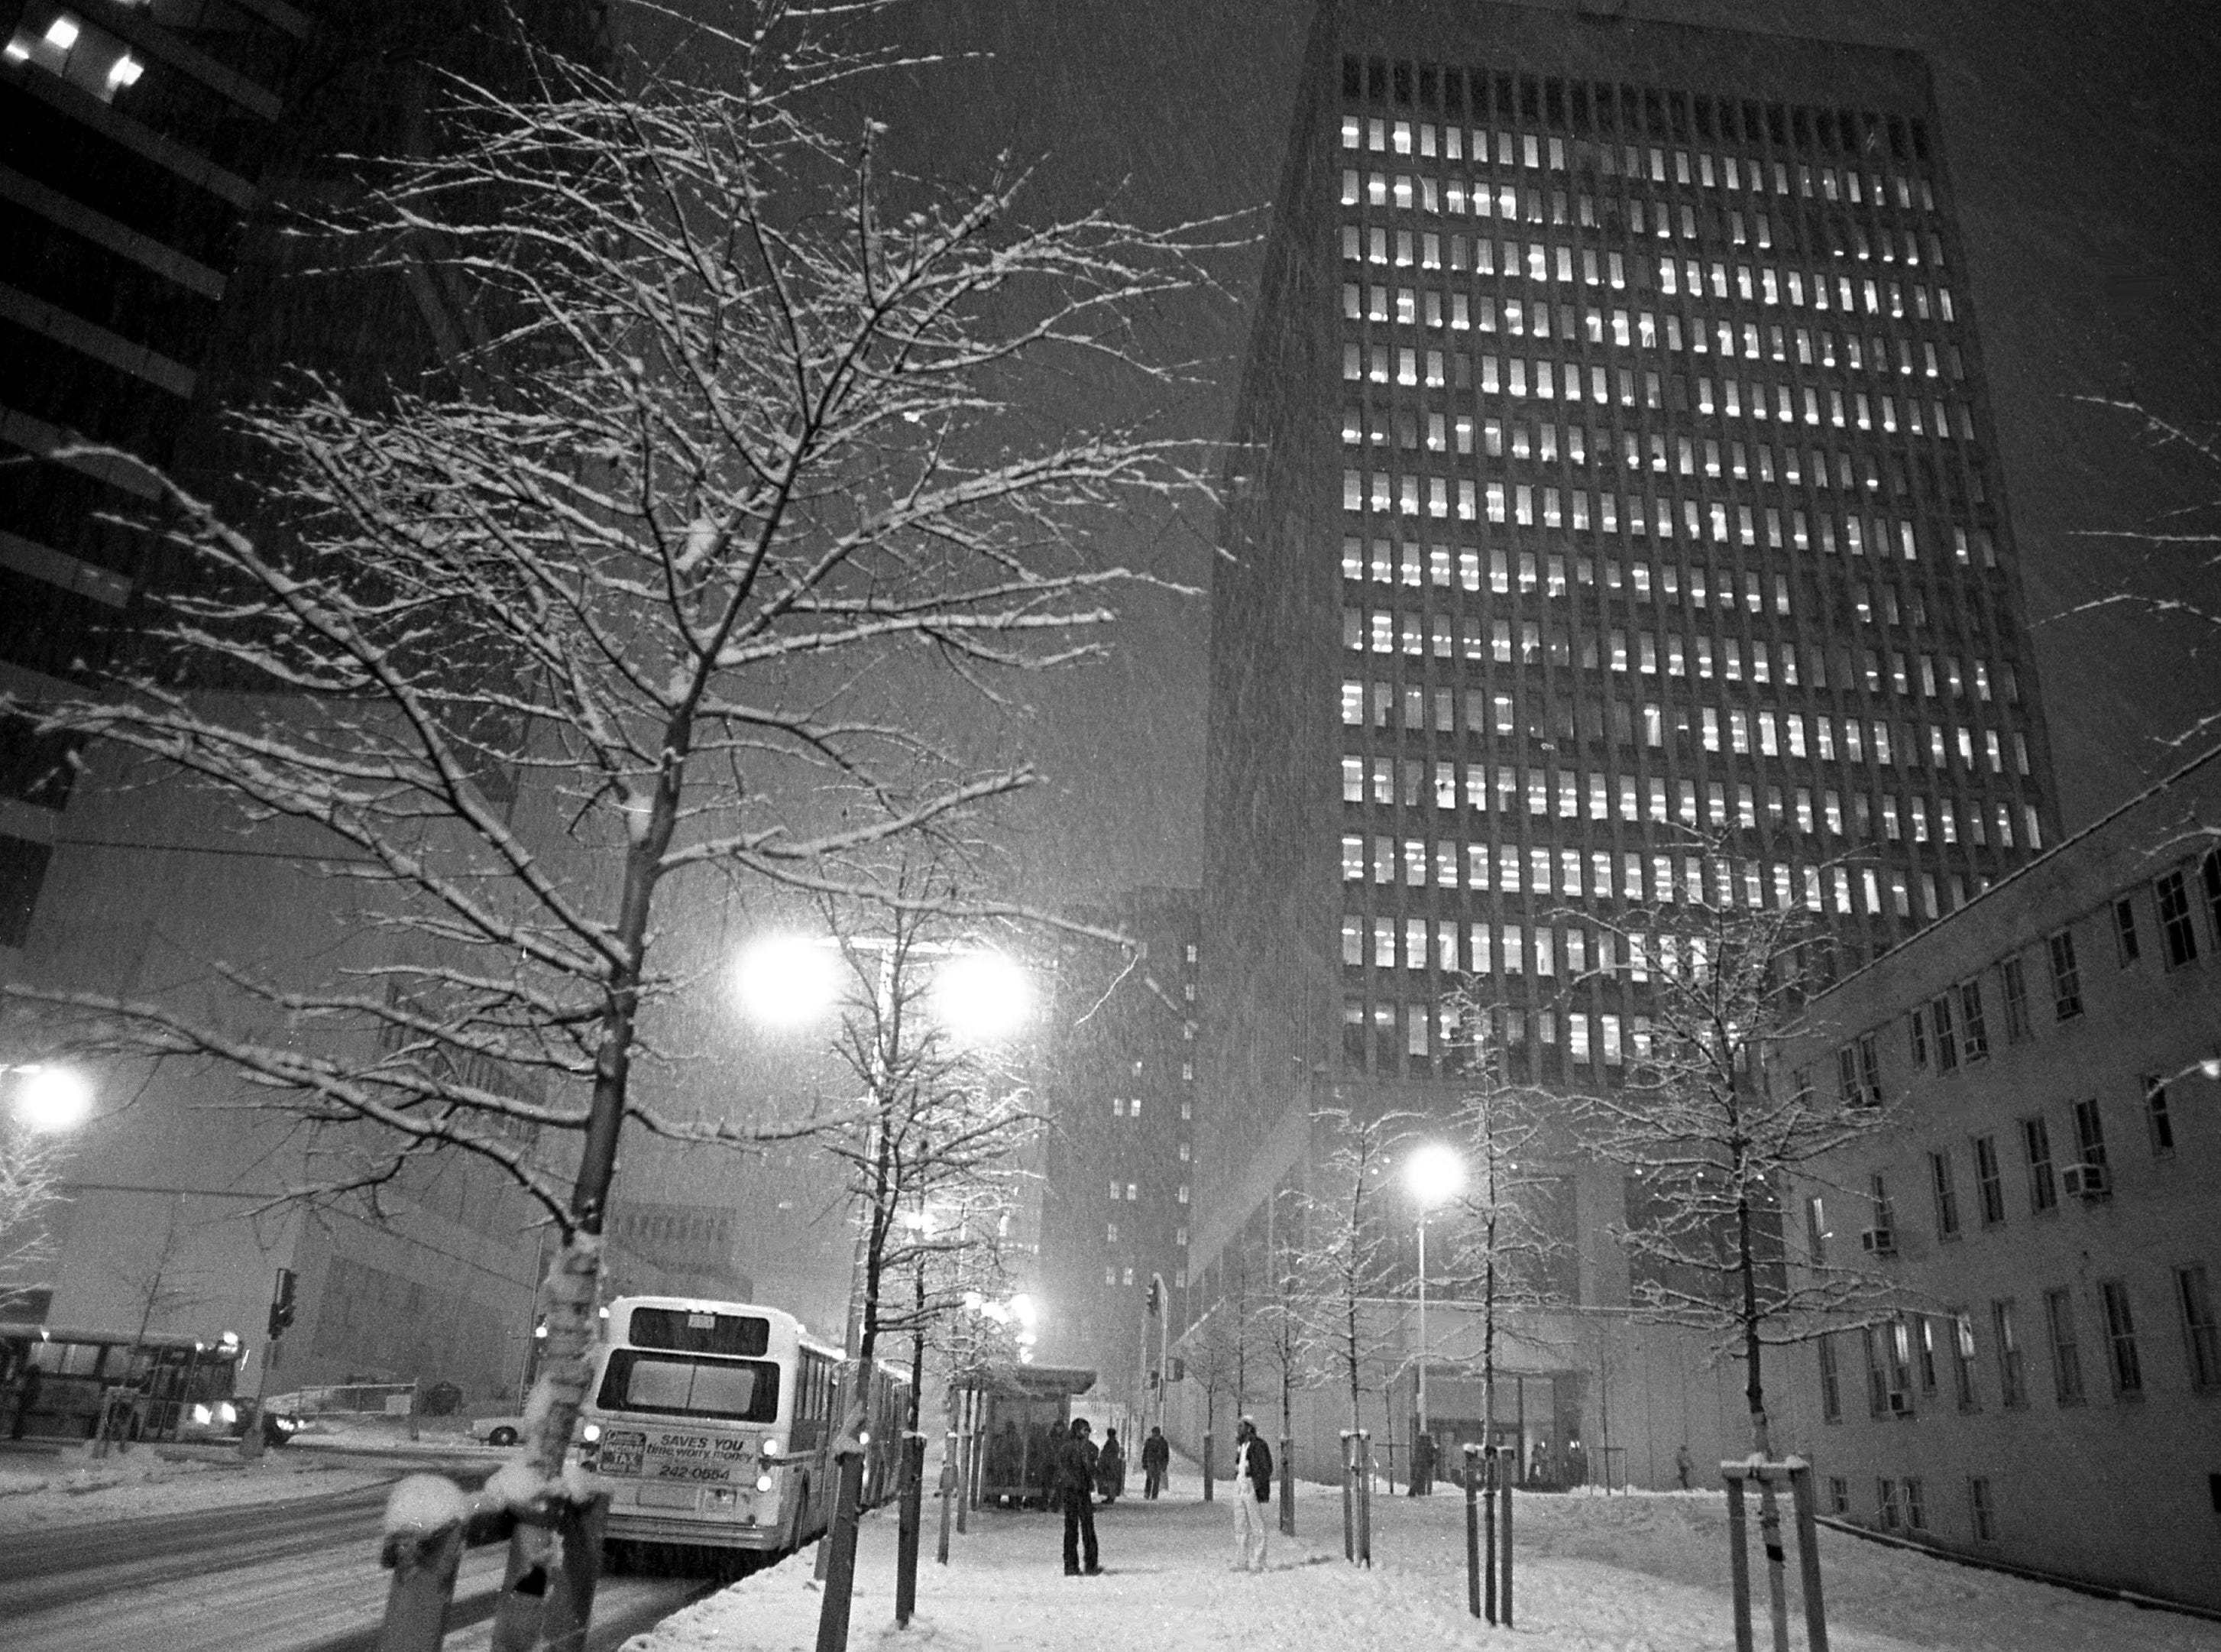 Snow falls during light traffic on Charlotte Avenue at night in downtown Nashville on Feb. 8, 1979.